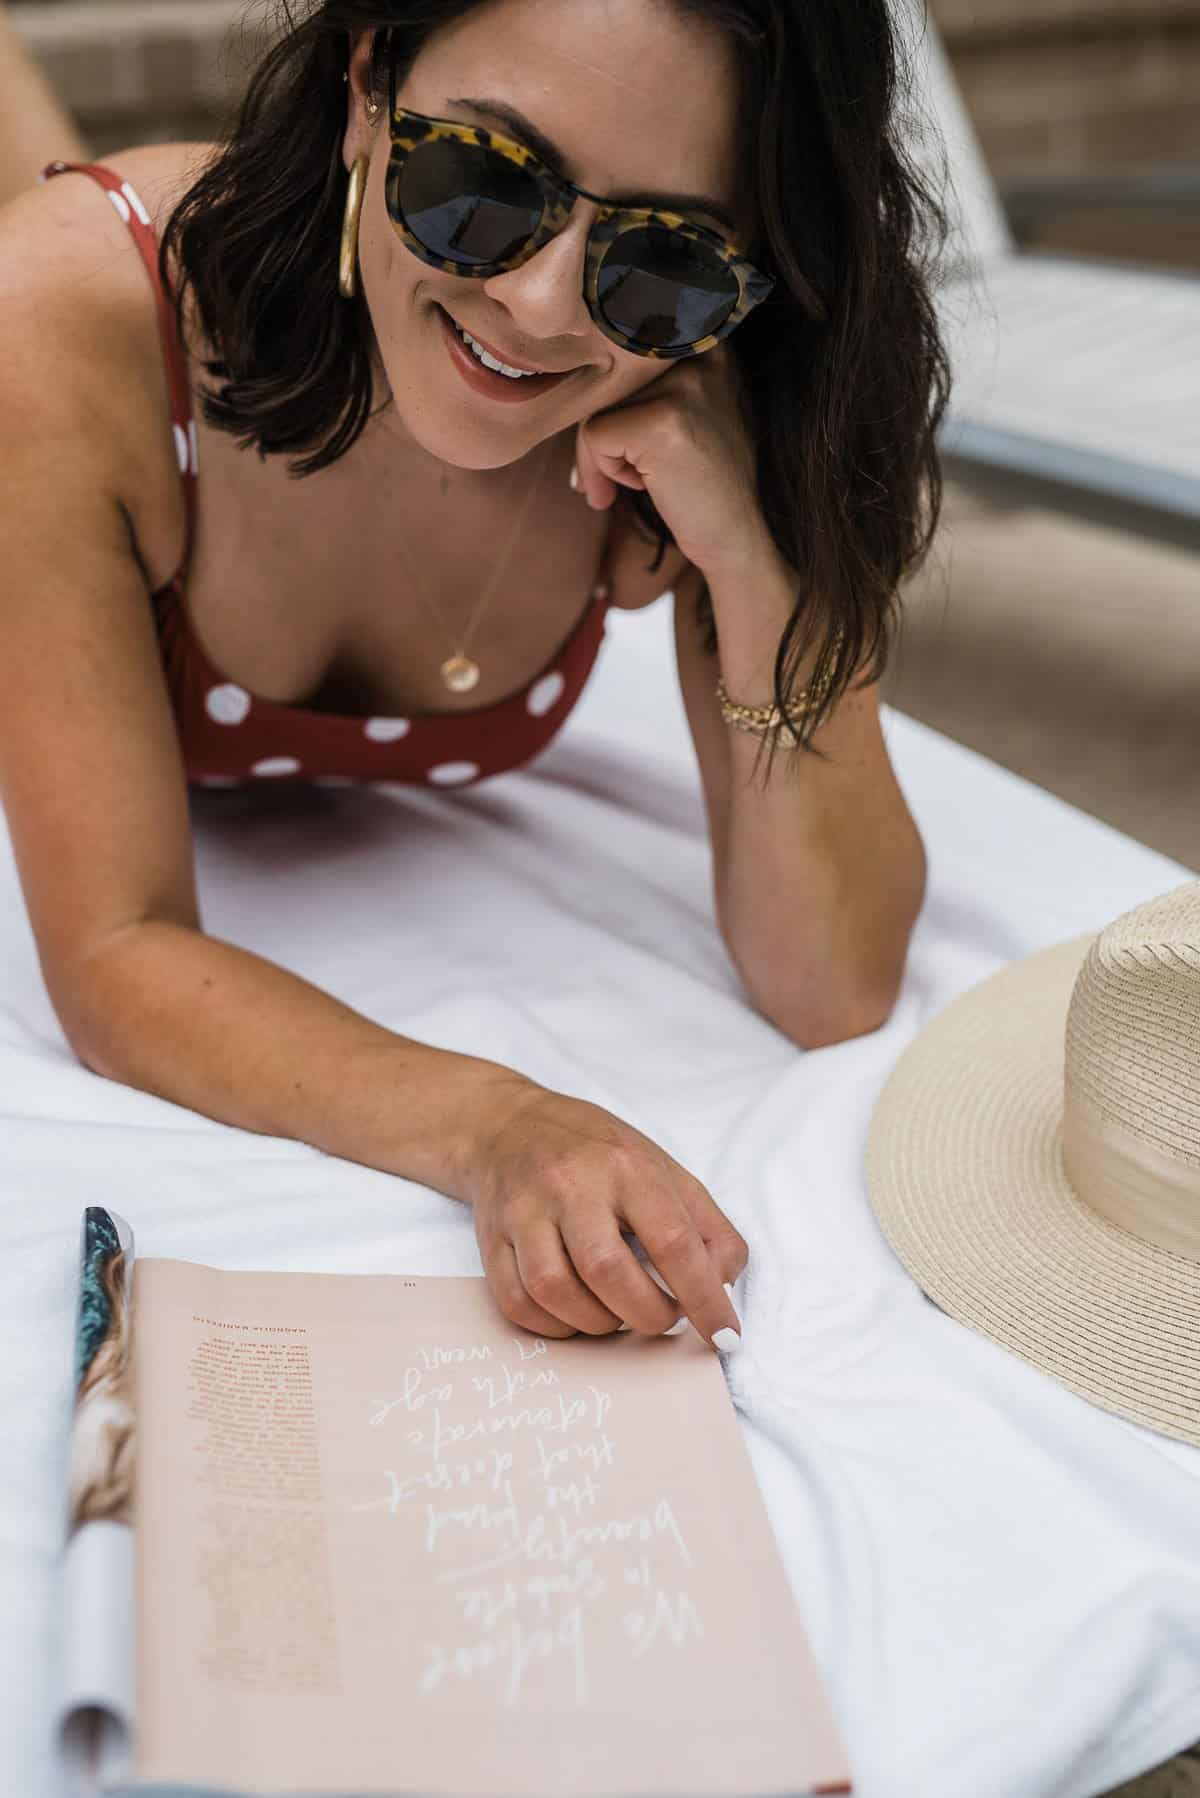 Jessica Camerata of An Indigo Day is sharing some fun things to do at the pool alone or with friends